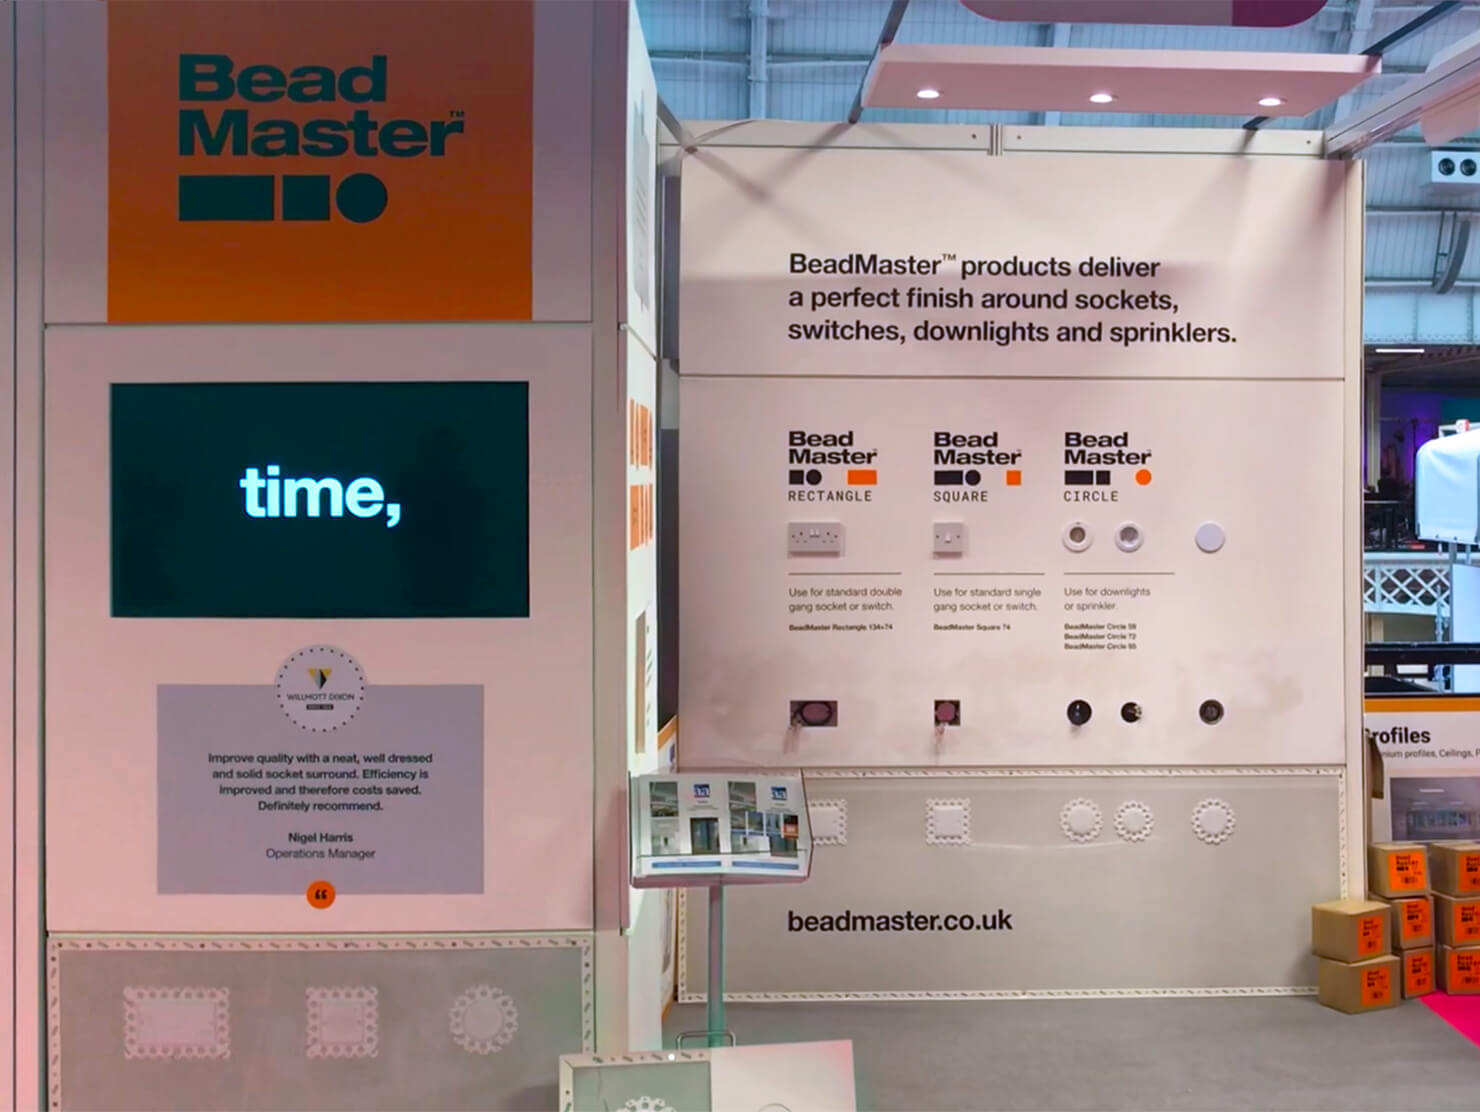 BeadMaster London Build 2019 event stand.